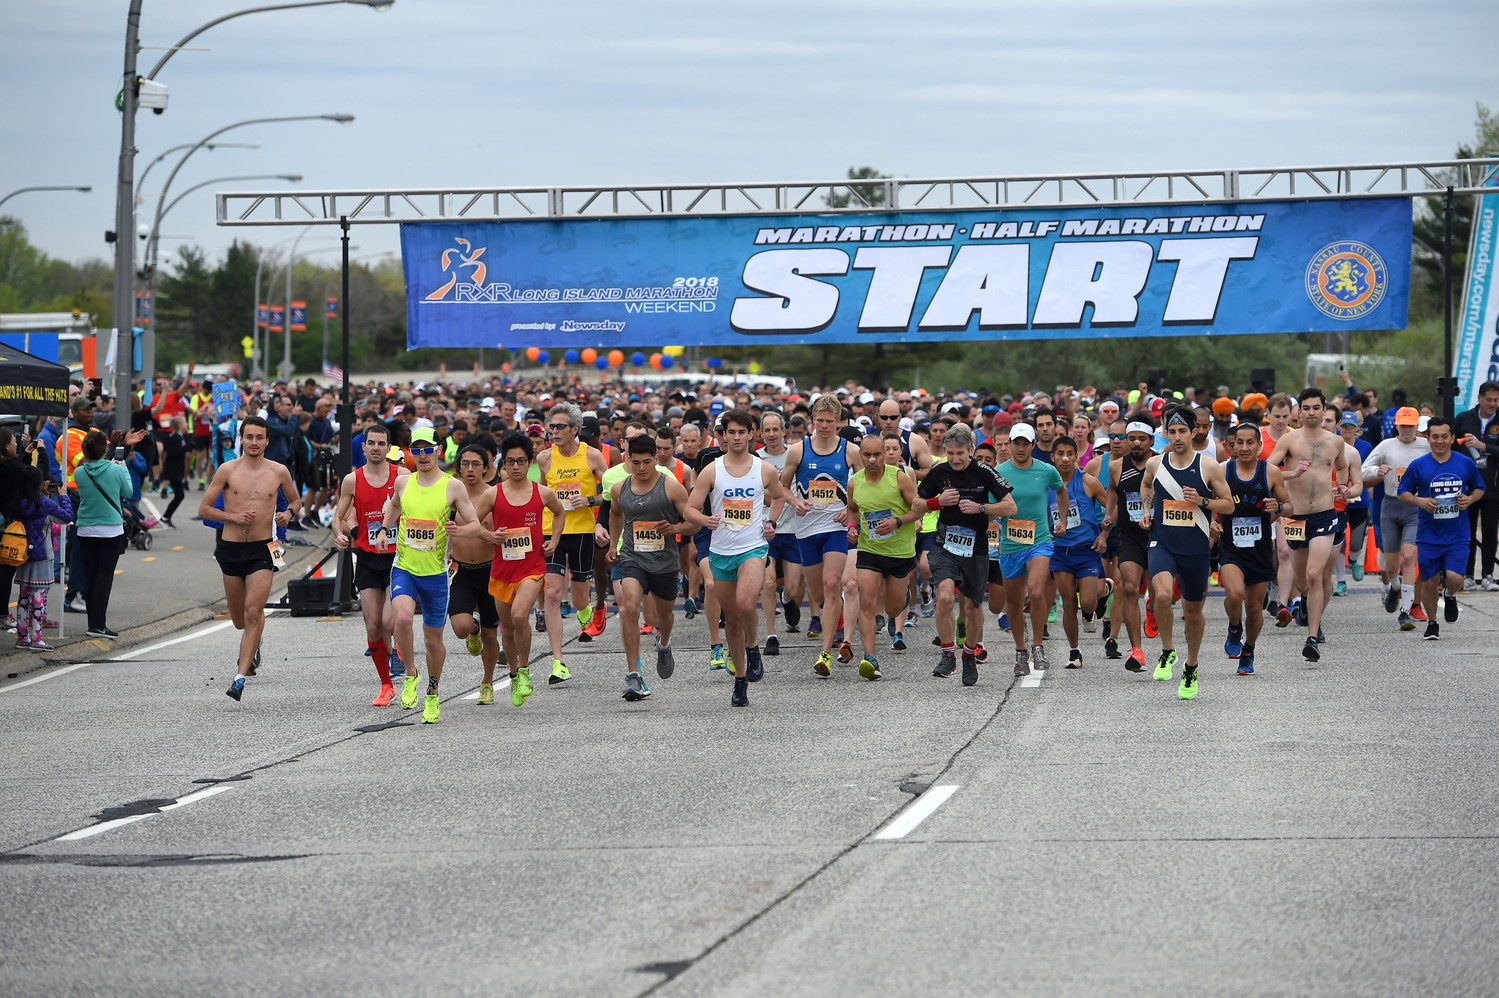 The Long Island Marathon, set for next May 5, will see some changes in 2019: It will officially be known as the NEFCU Long Island Marathon, after its new title sponsor, and have a new route.